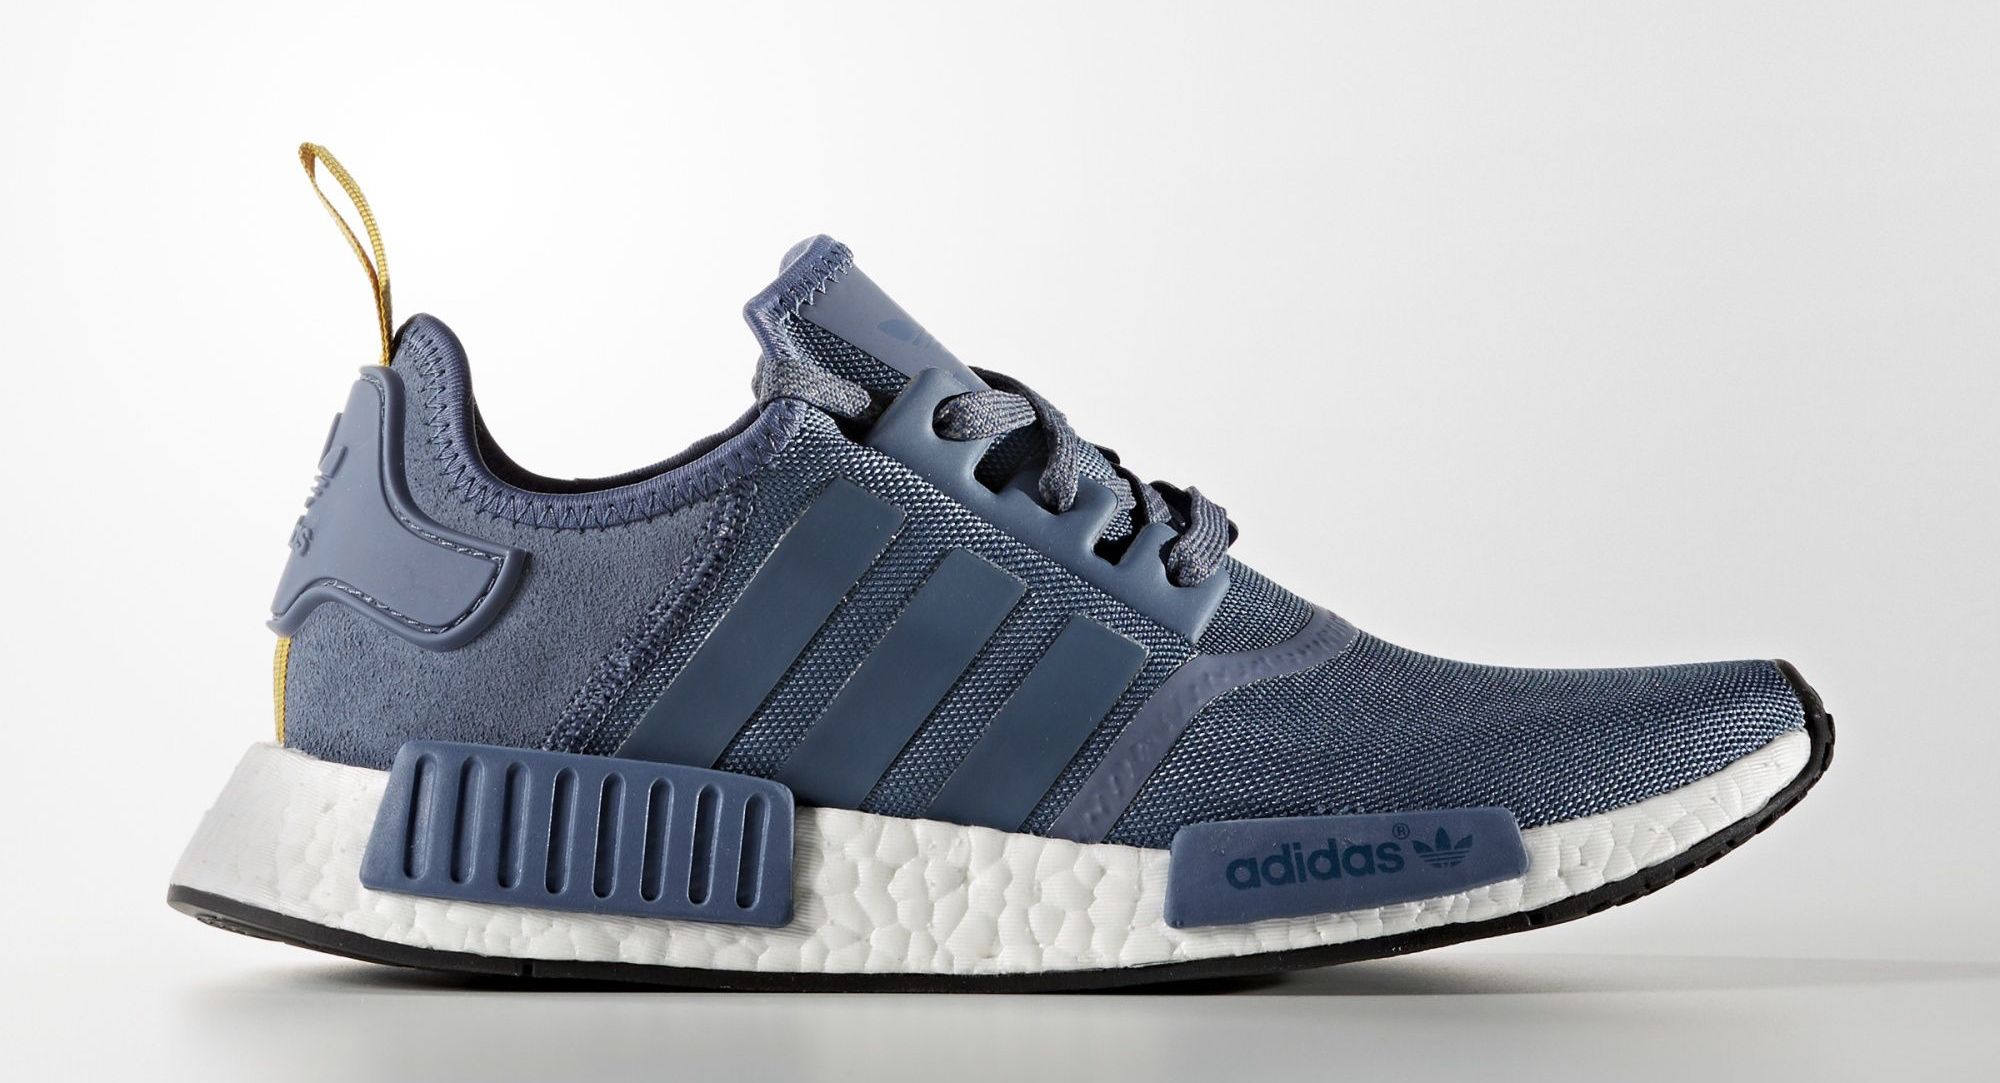 Adidas NMD Blue Suede